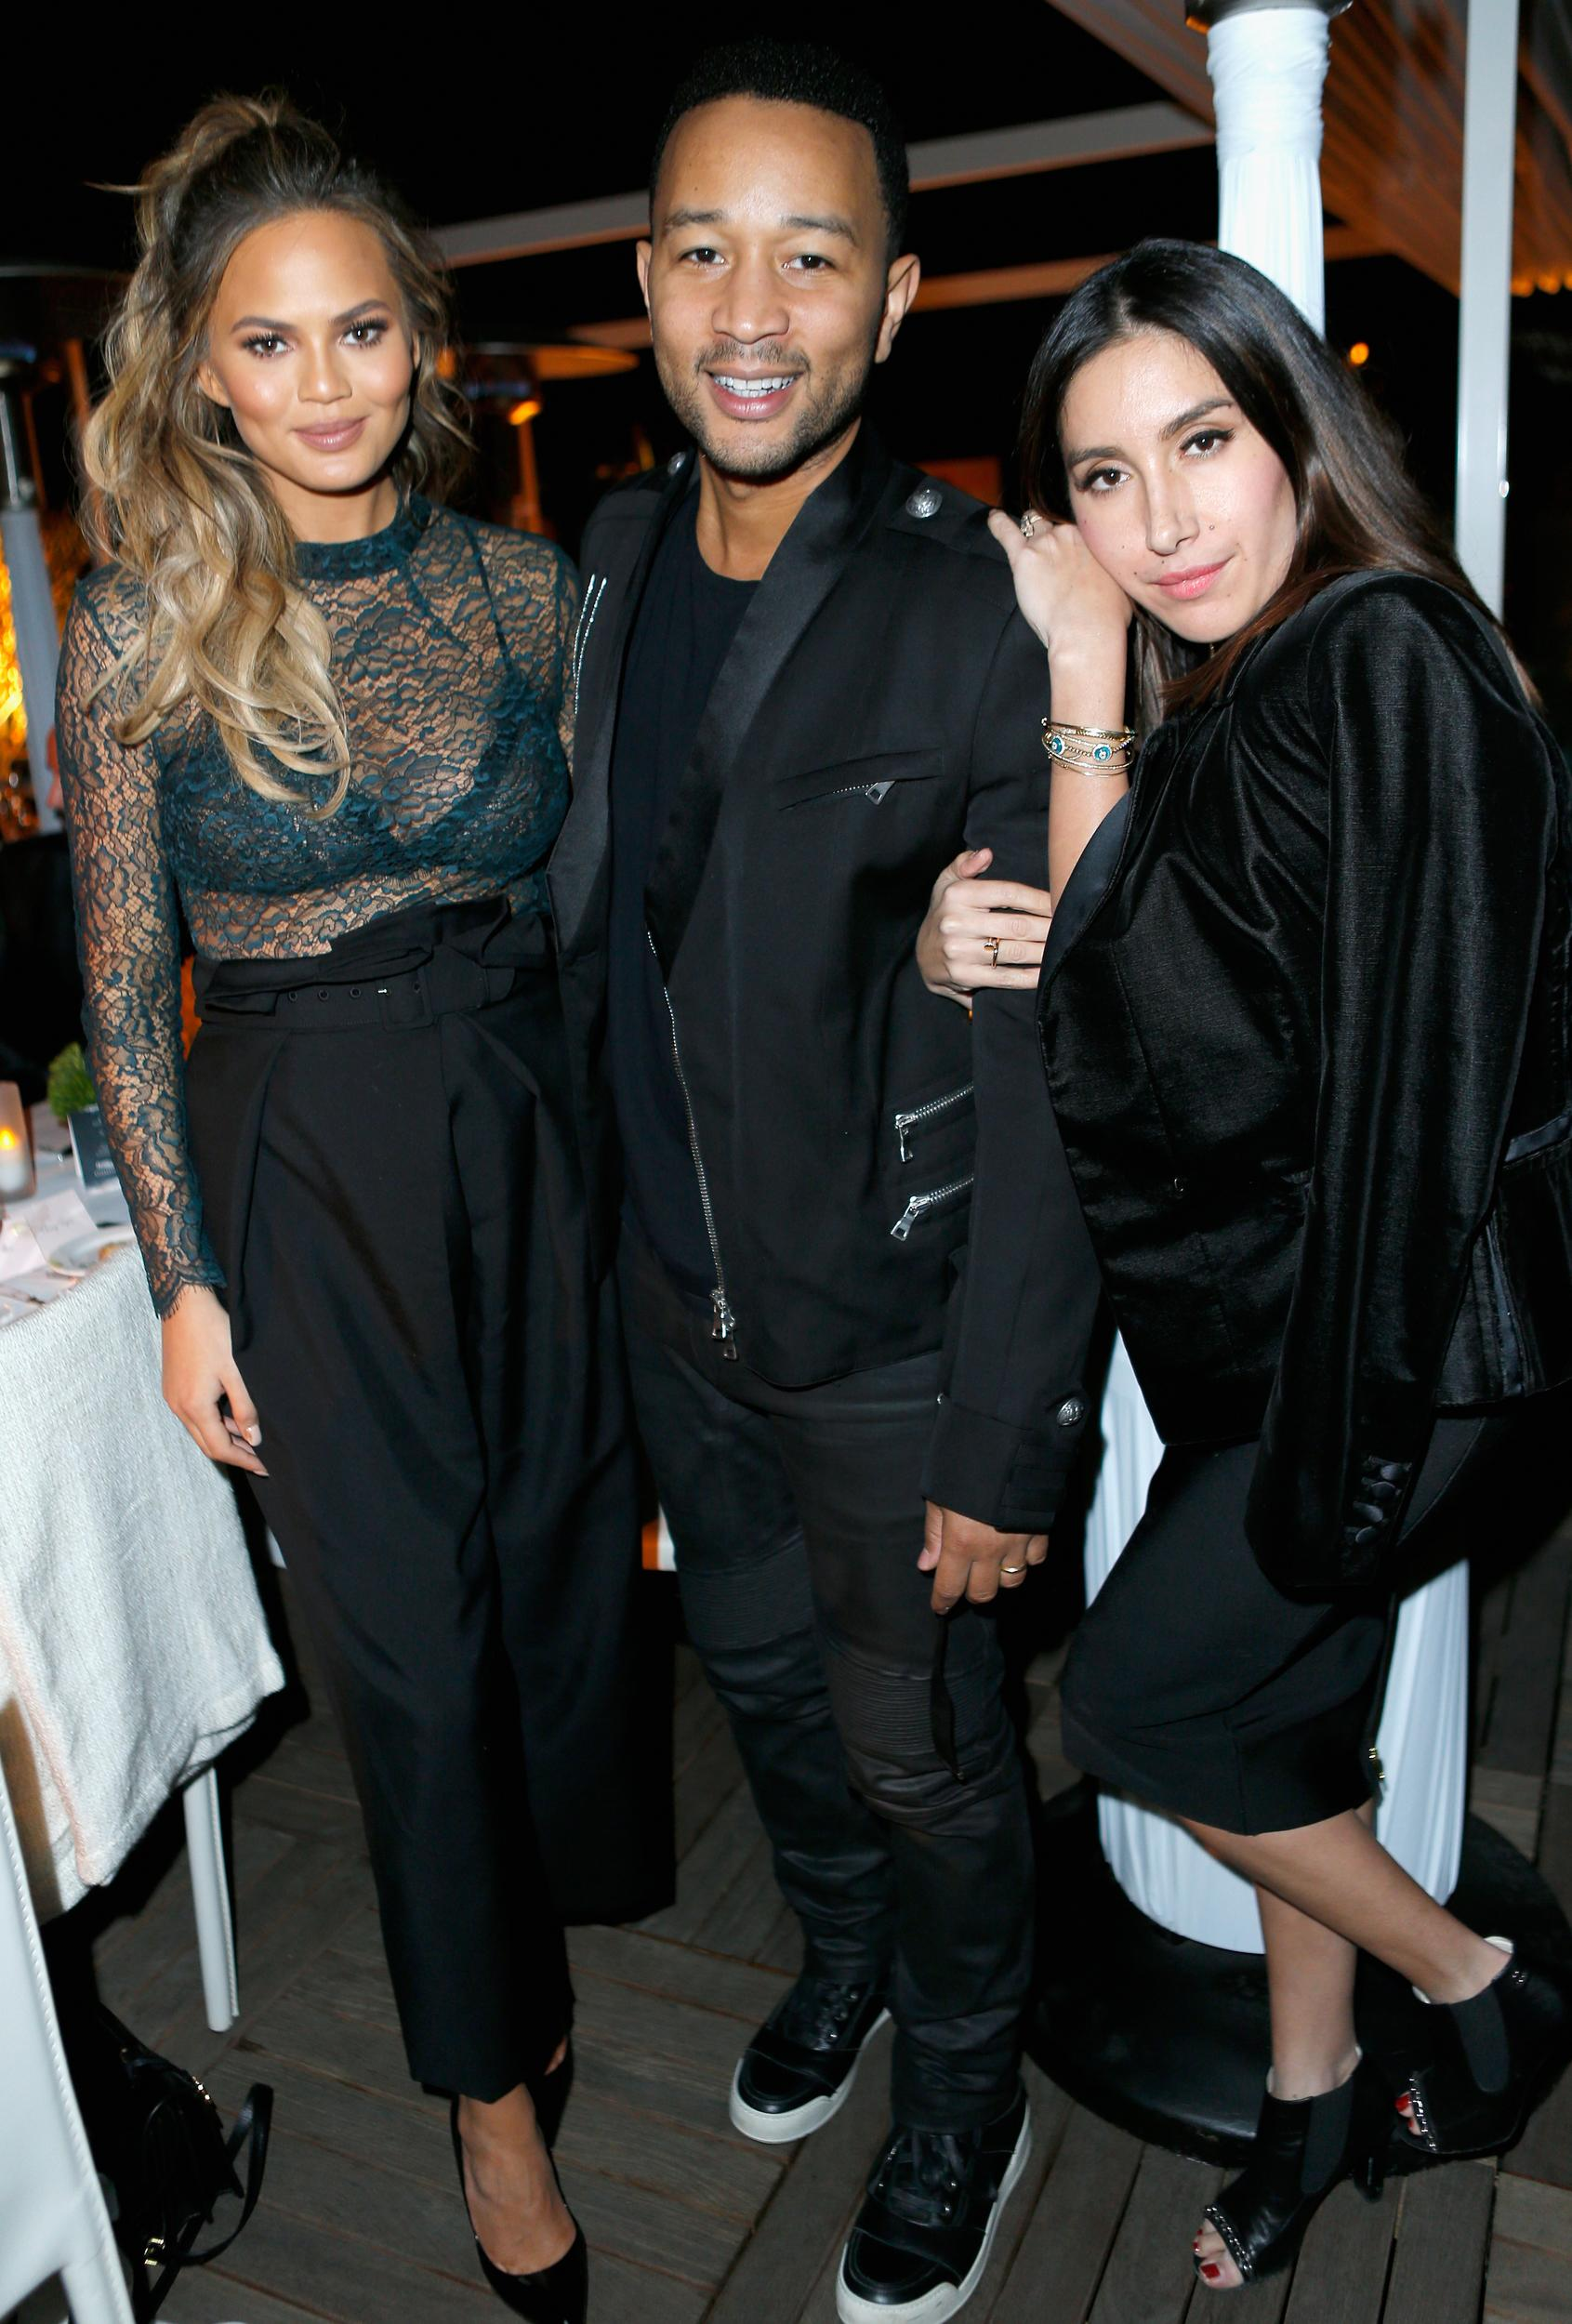 WEST HOLLYWOOD, CA - NOVEMBER 11: (L-R) Model Chrissy Teigen, recording artist John Legend and  hairstylist Jen Atkin attend The Hollywood Reporter's Beauty Dinner at The London West Hollywood on November 11, 2015 in West Hollywood, California.  (Photo by Jeff Vespa/Getty Images for The Hollywood Reporter)